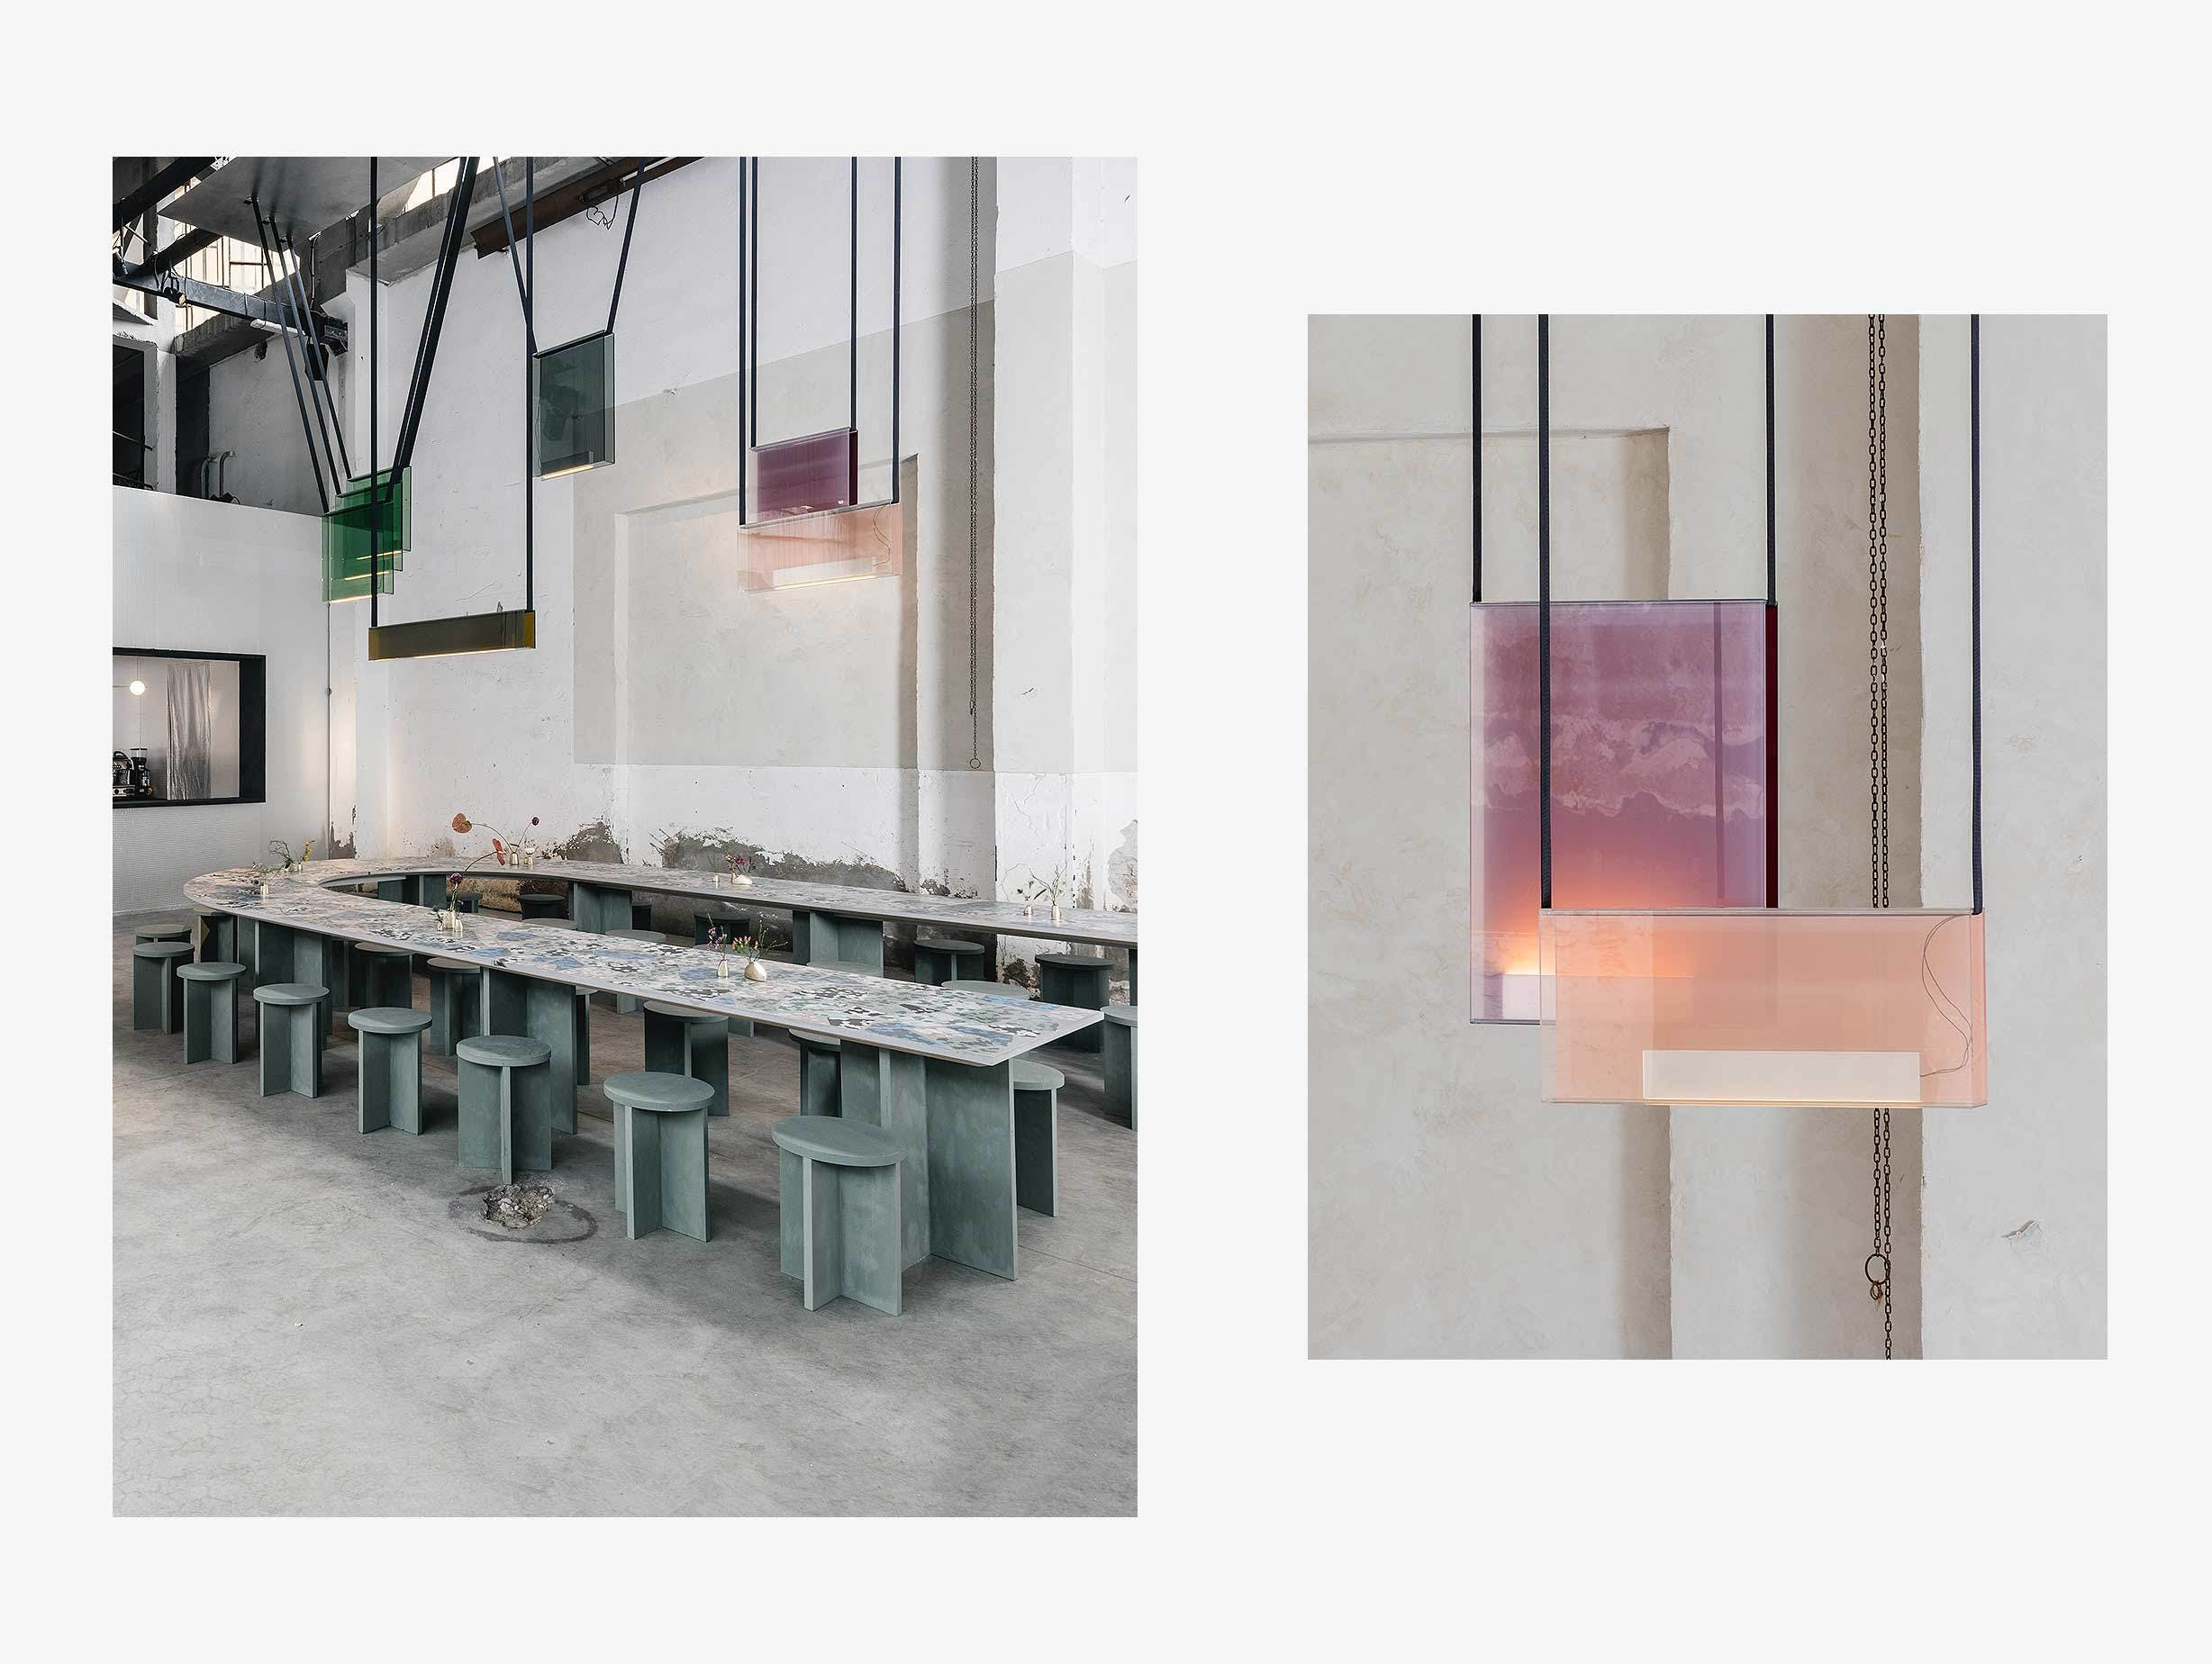 Lambert And Fils Sante Light Milan 2019 image